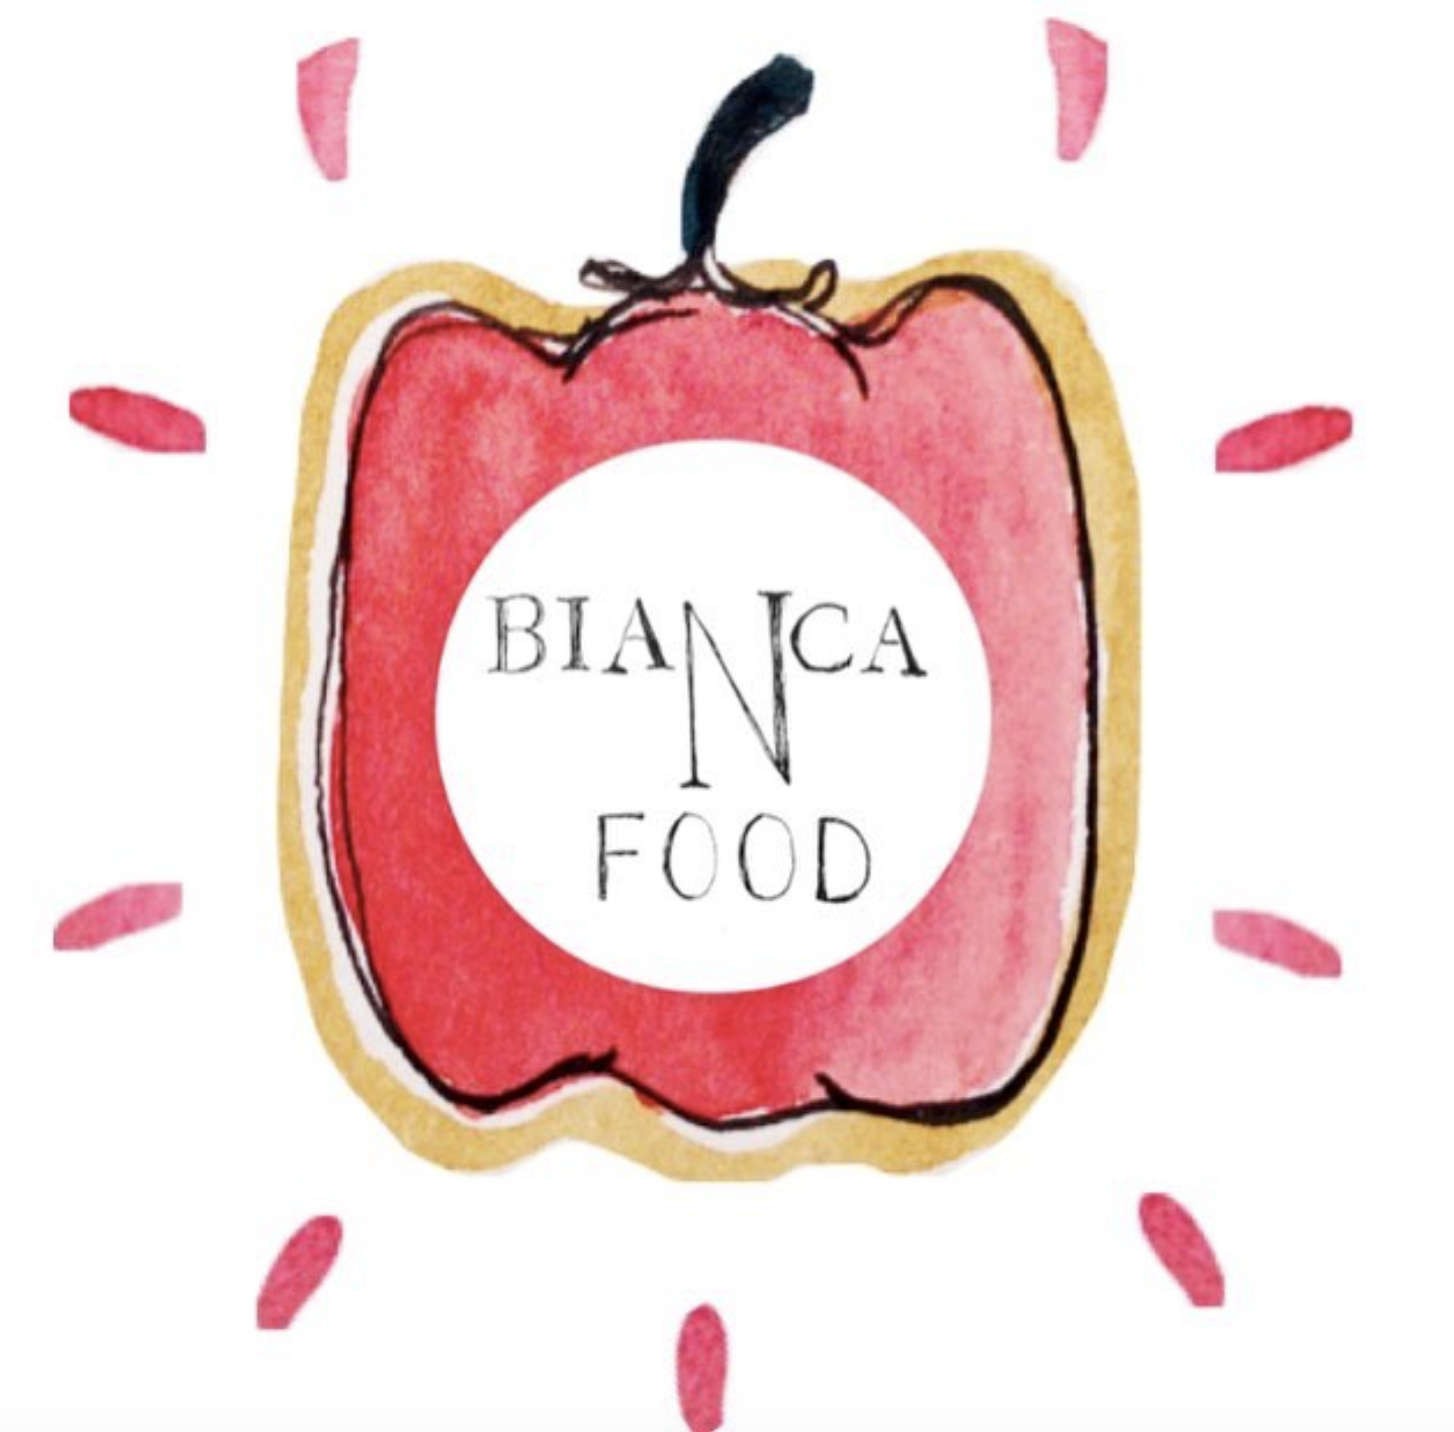 BIANca n food - Logo